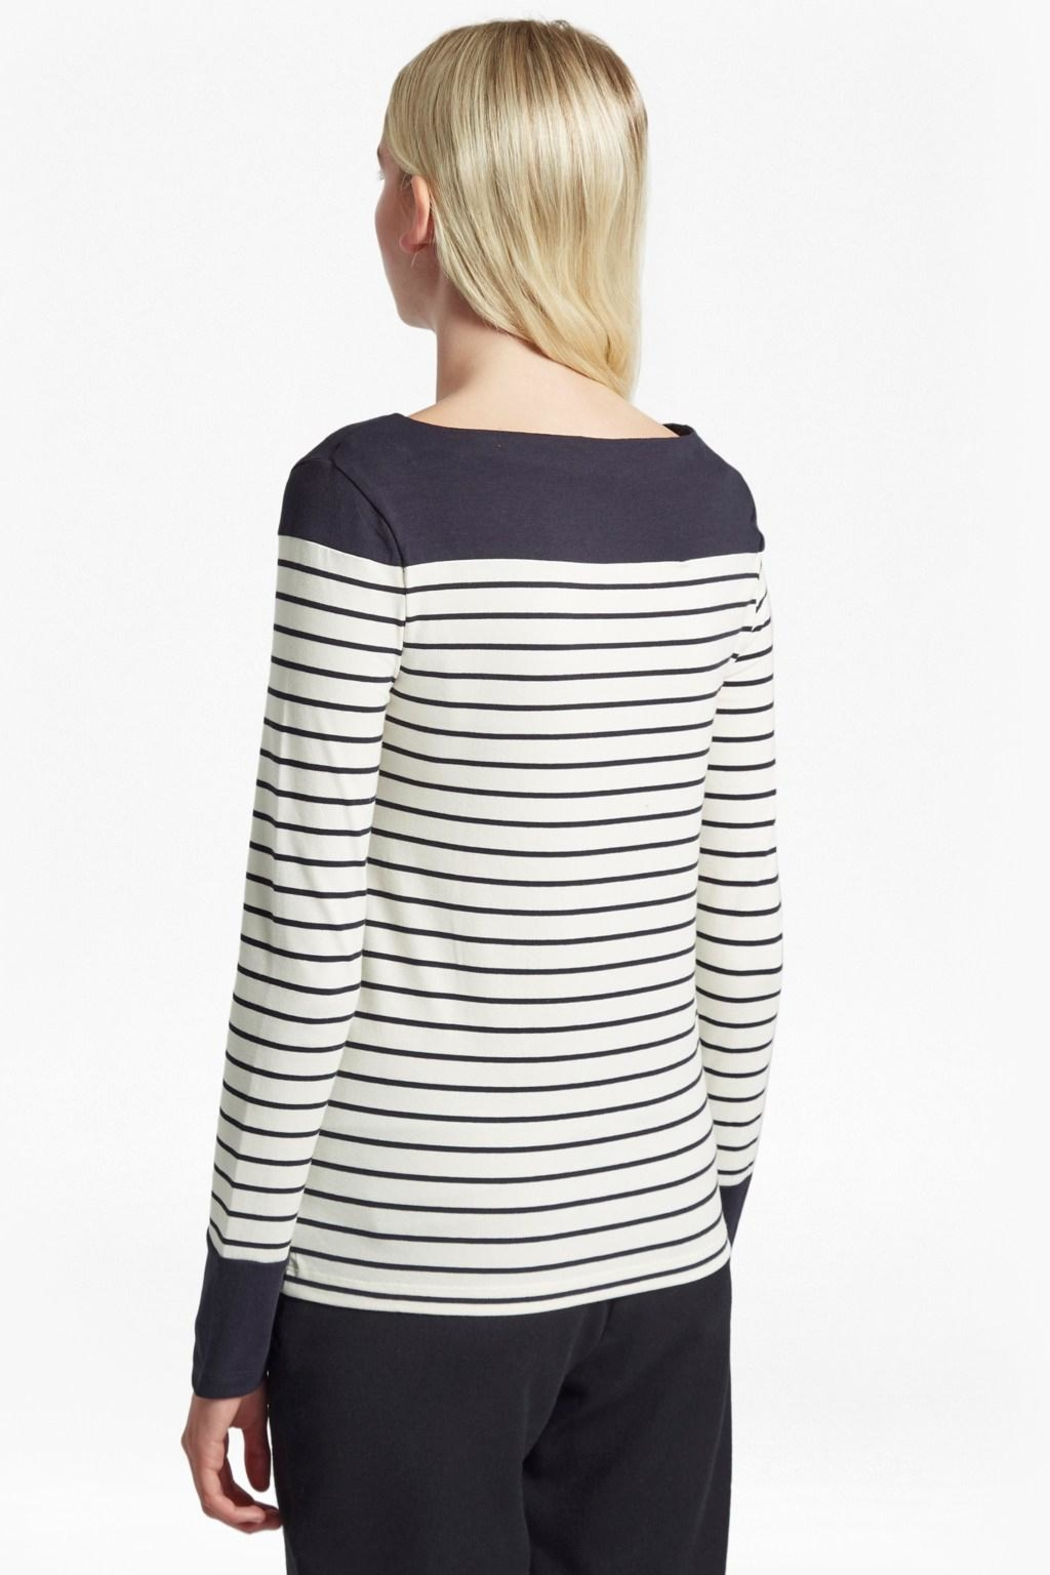 French Connection Striped Breton Tshirt - Front Full Image